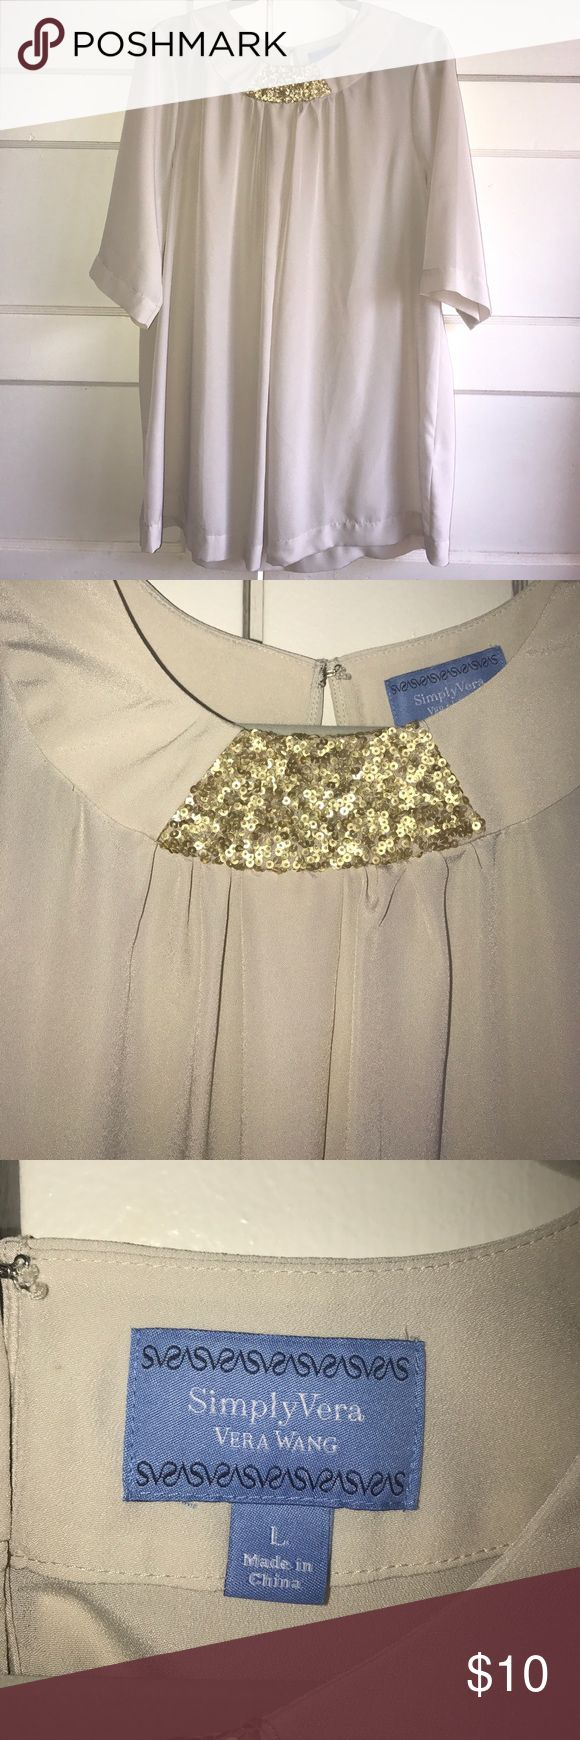 Simply Vera Sequined Top This top is gently used. Still in very good condition. 100 % Polyester. Gold sequin collar. Cream in color. Fabric is very light weight. Simply Vera Vera Wang Tops Blouses